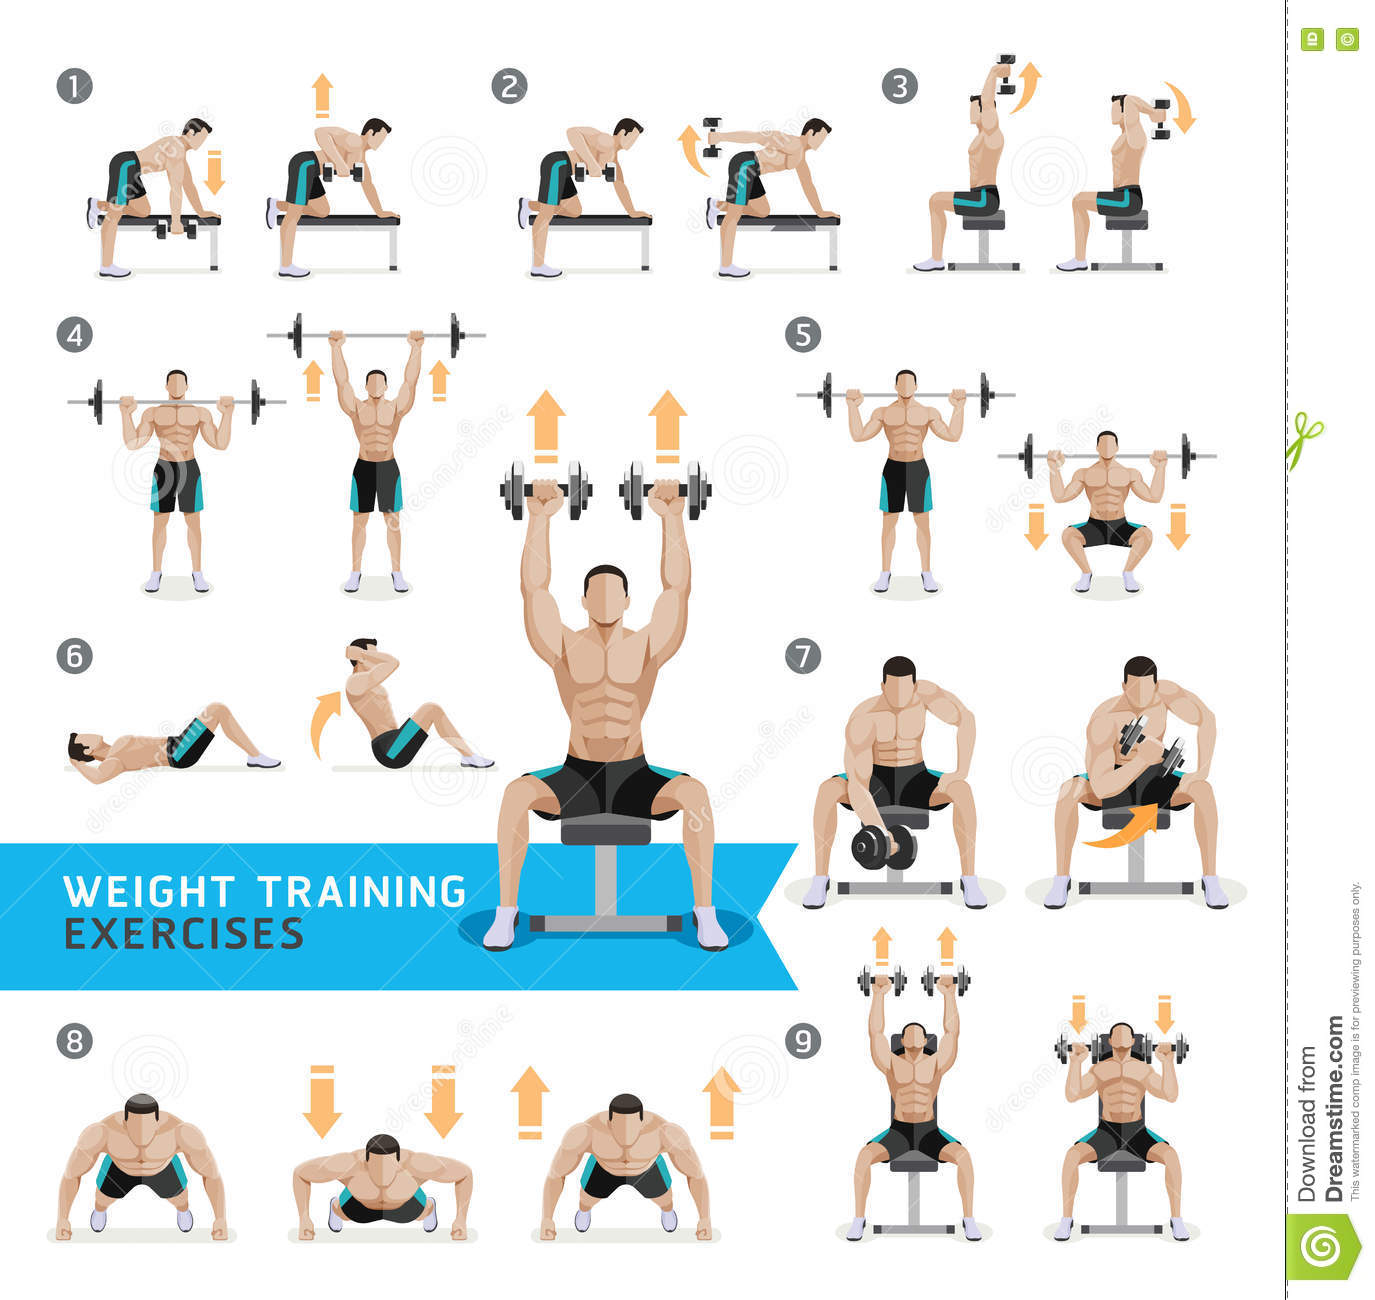 dumbbell exercises and workouts weight training stock weight lifting clip art women weightlifting clipart transparent png